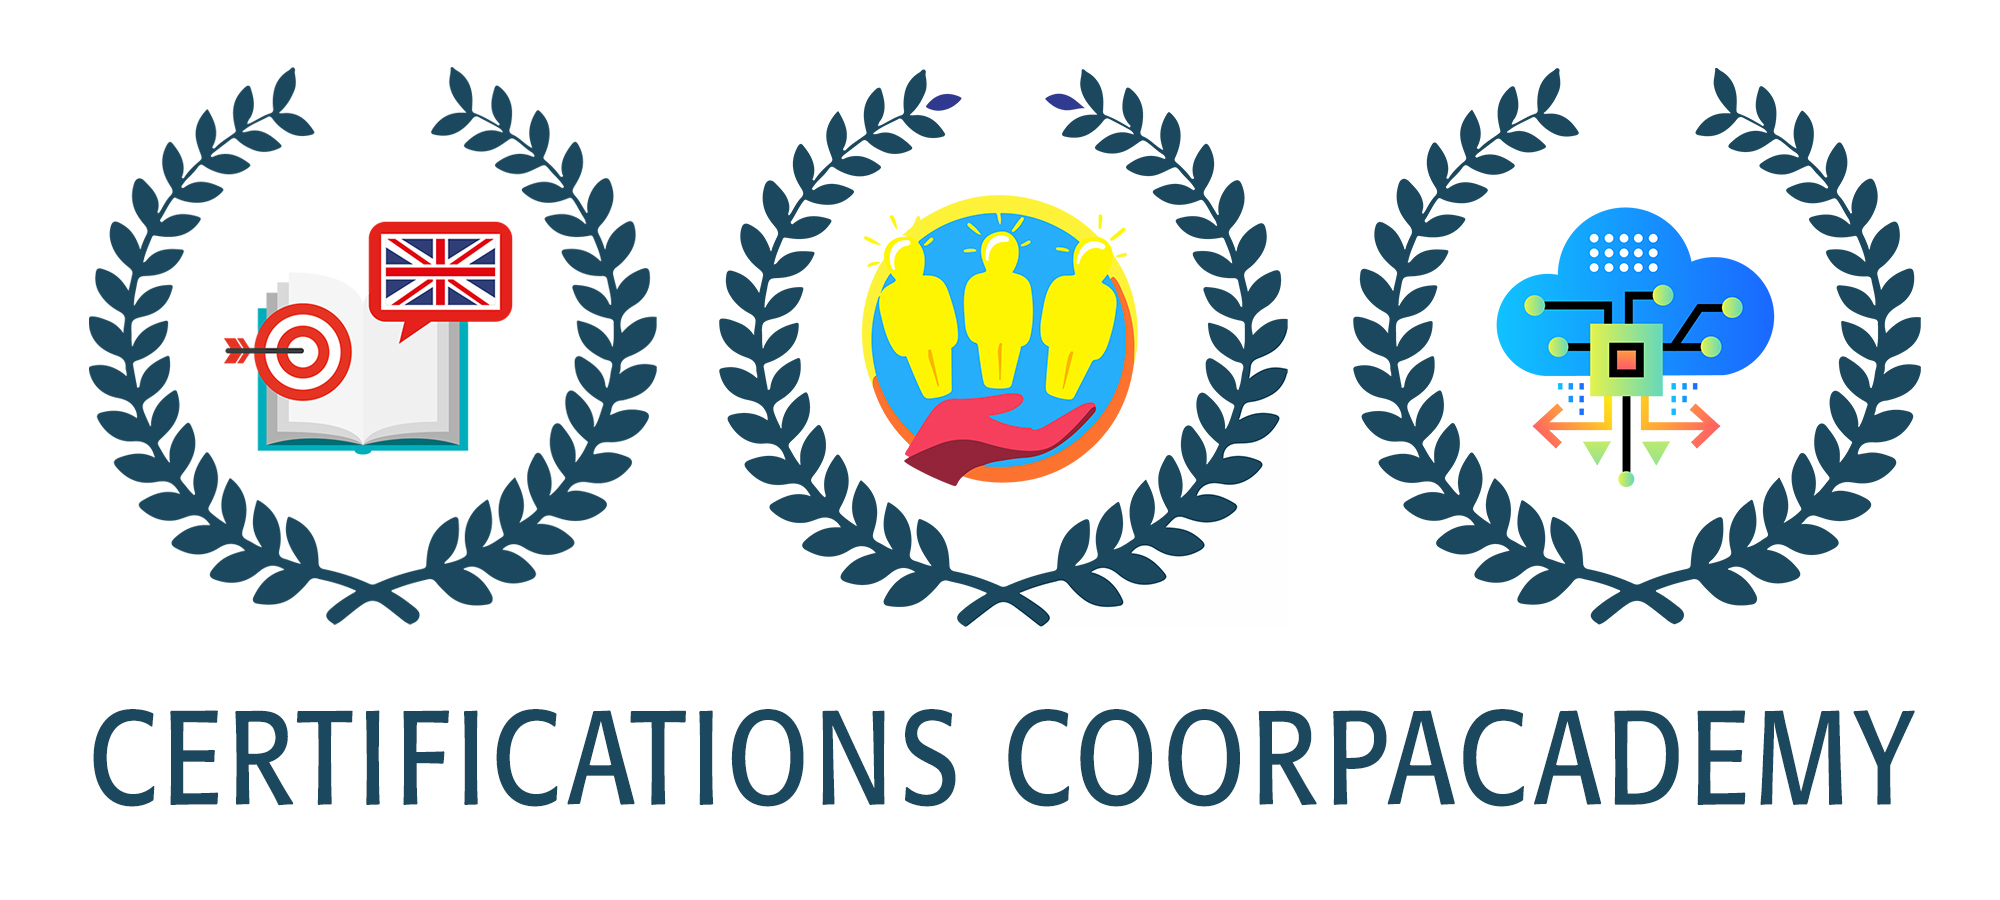 Certifications Coorpacademy